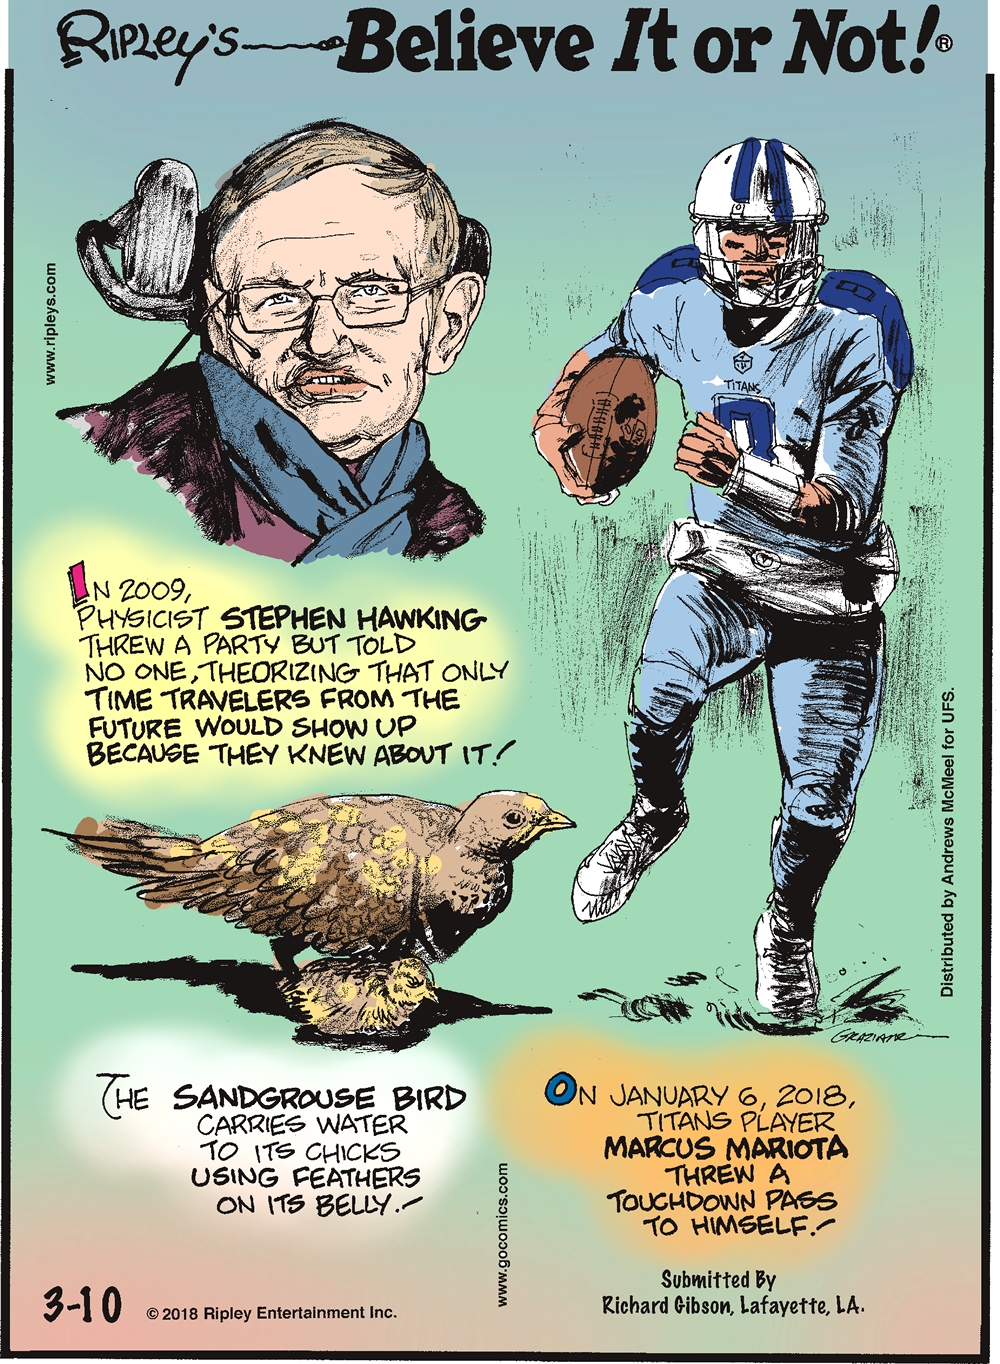 In 2009, physicist Stephen Hawking threw a party but told no one, theorizing that only time travelers from the future would show up because they knew about it!-------------------- The sandgrouse bird carries water to its chicks using feathers on its belly!-------------------- On January 6, 2018, Titans player Marcus Mariota threw a touchdown pass to himself! Submitted by Richard Gibson, Lafayette, LA.